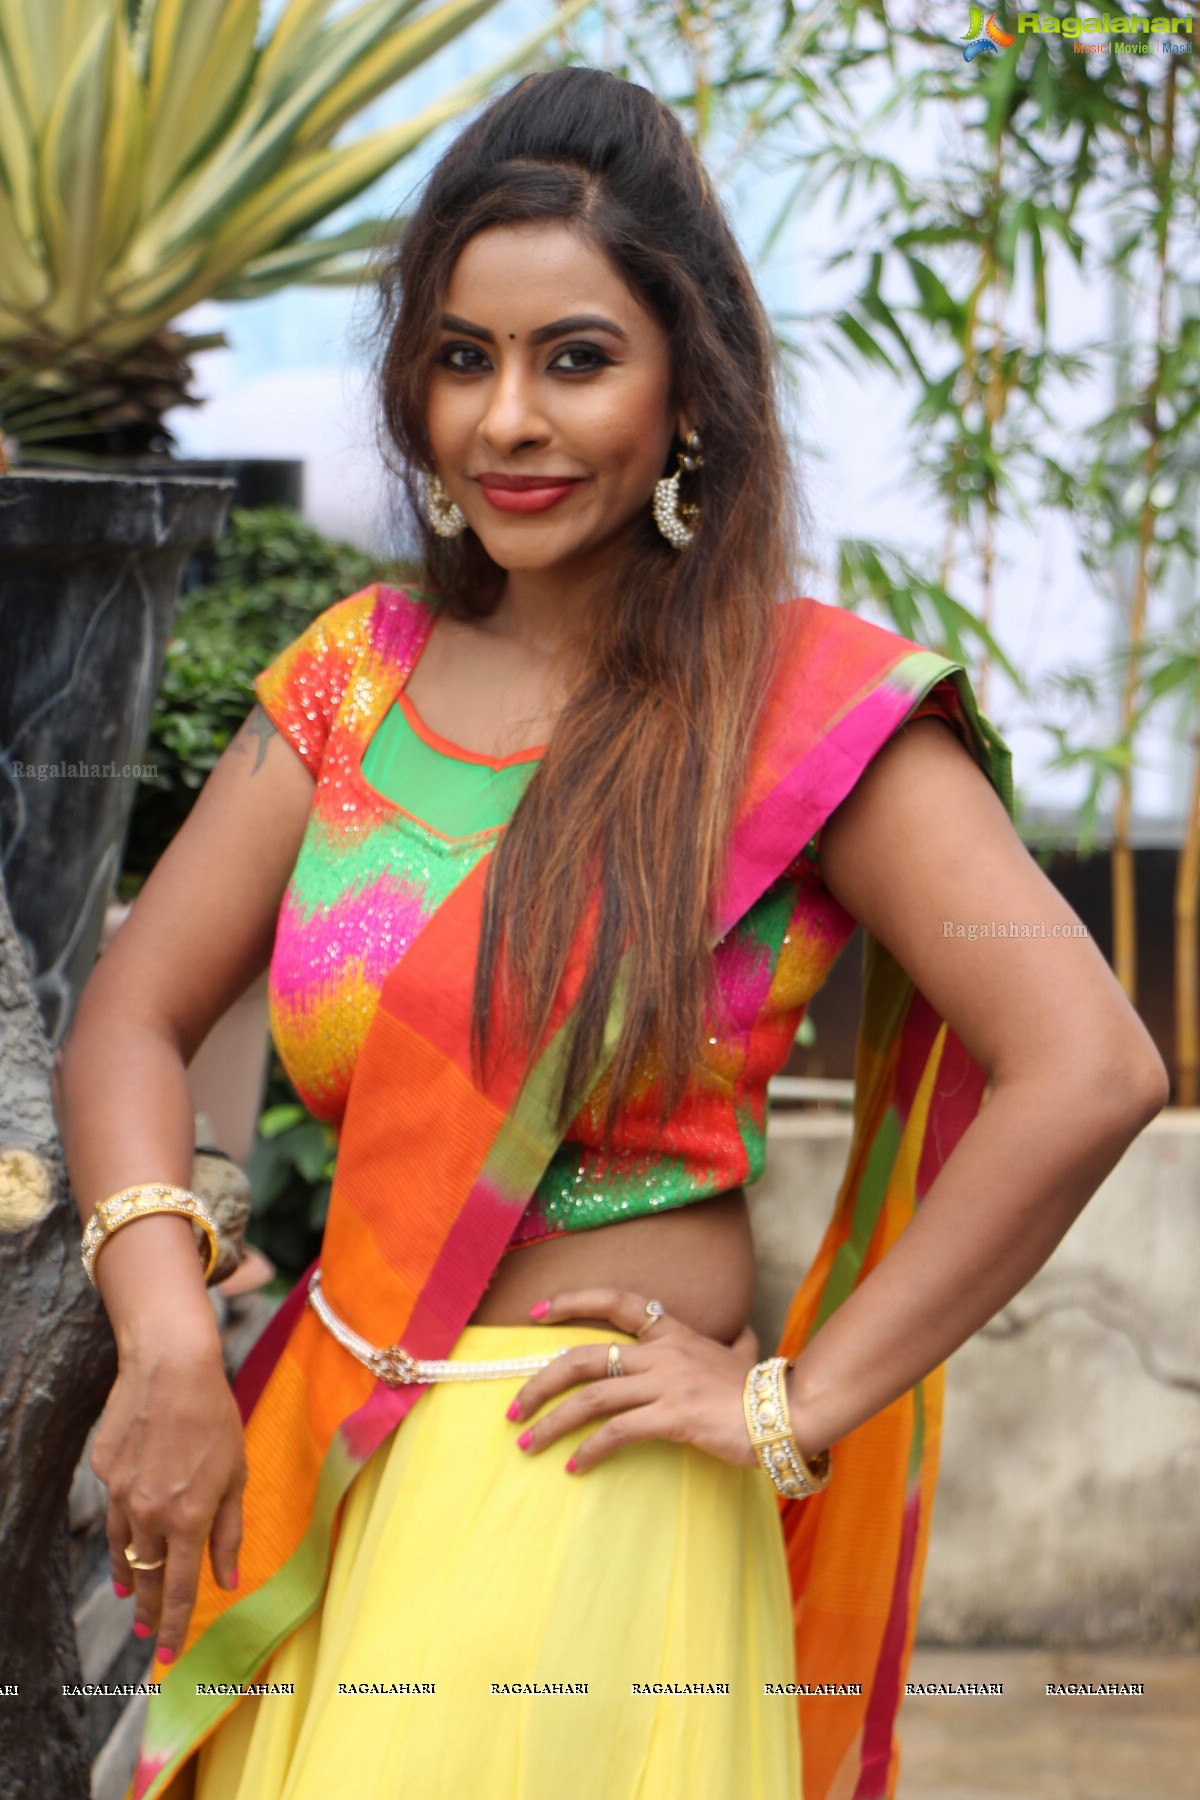 sri reddy mallidi hot in pink top be healthy